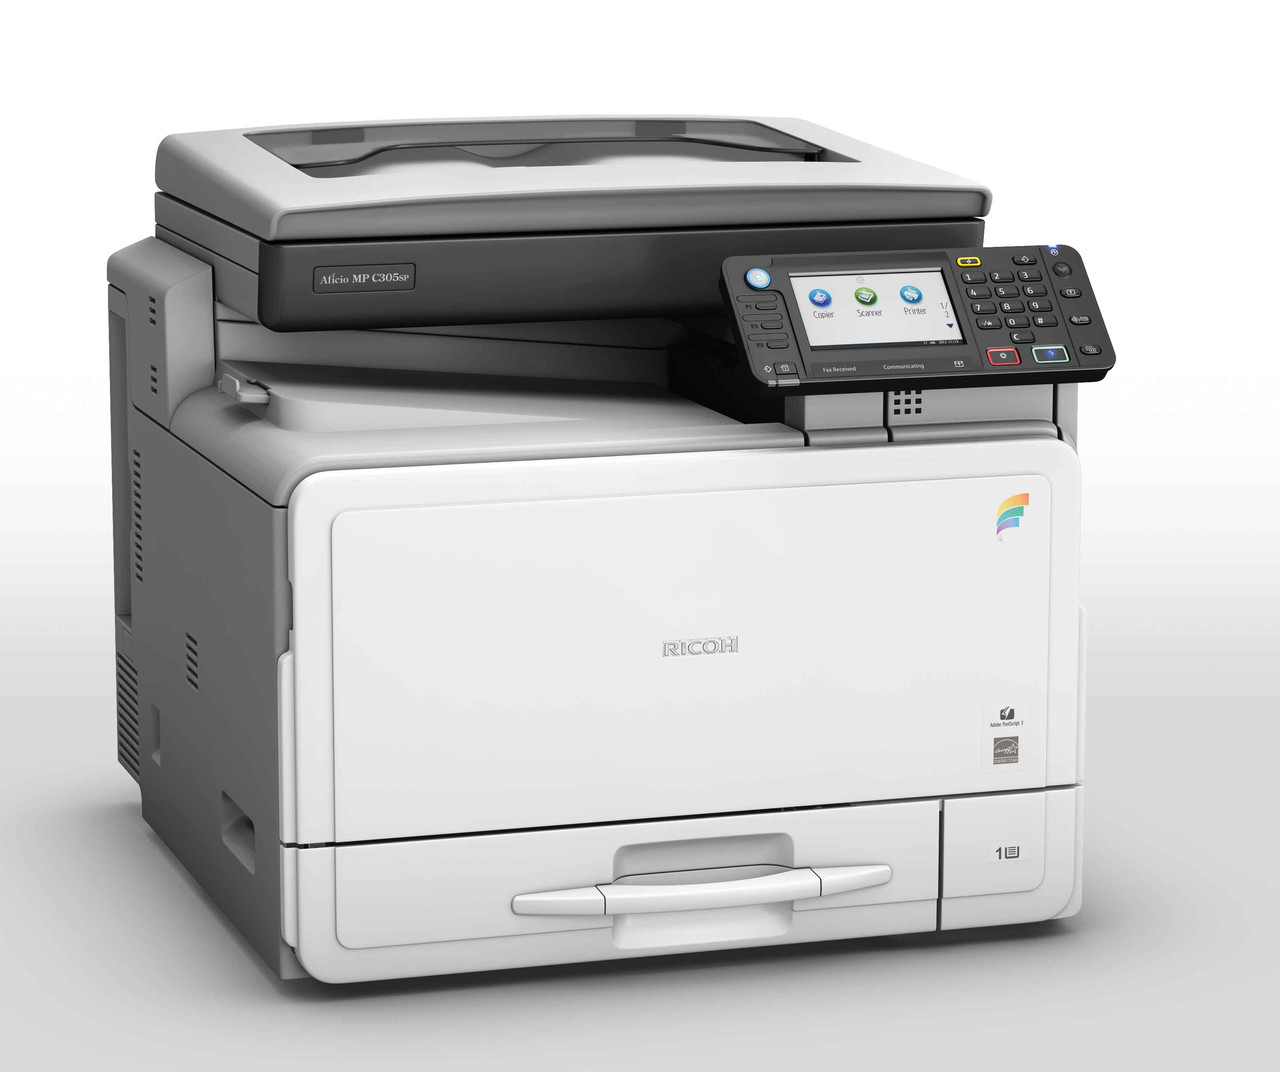 RICOH MP C406ZSPF PRINTER PCL 6 WINDOWS XP DRIVER DOWNLOAD